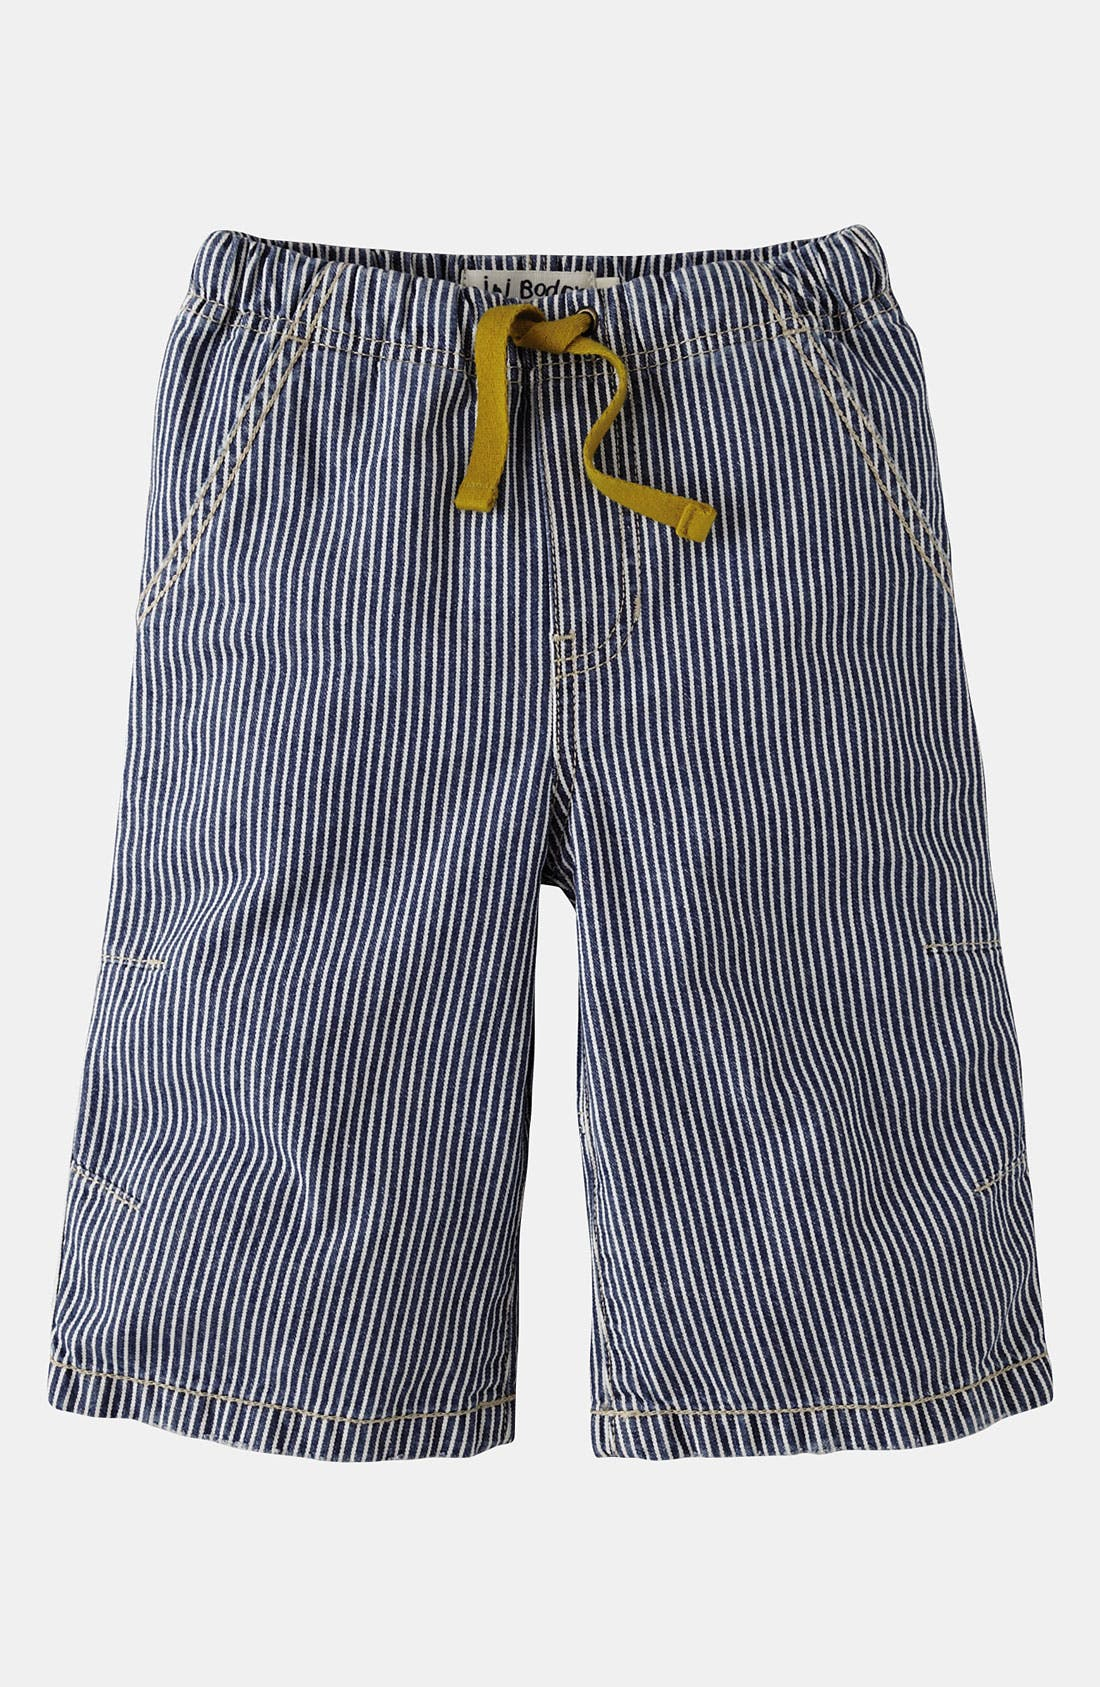 Alternate Image 1 Selected - Mini Boden Board Shorts (Little Boys & Big Boys)